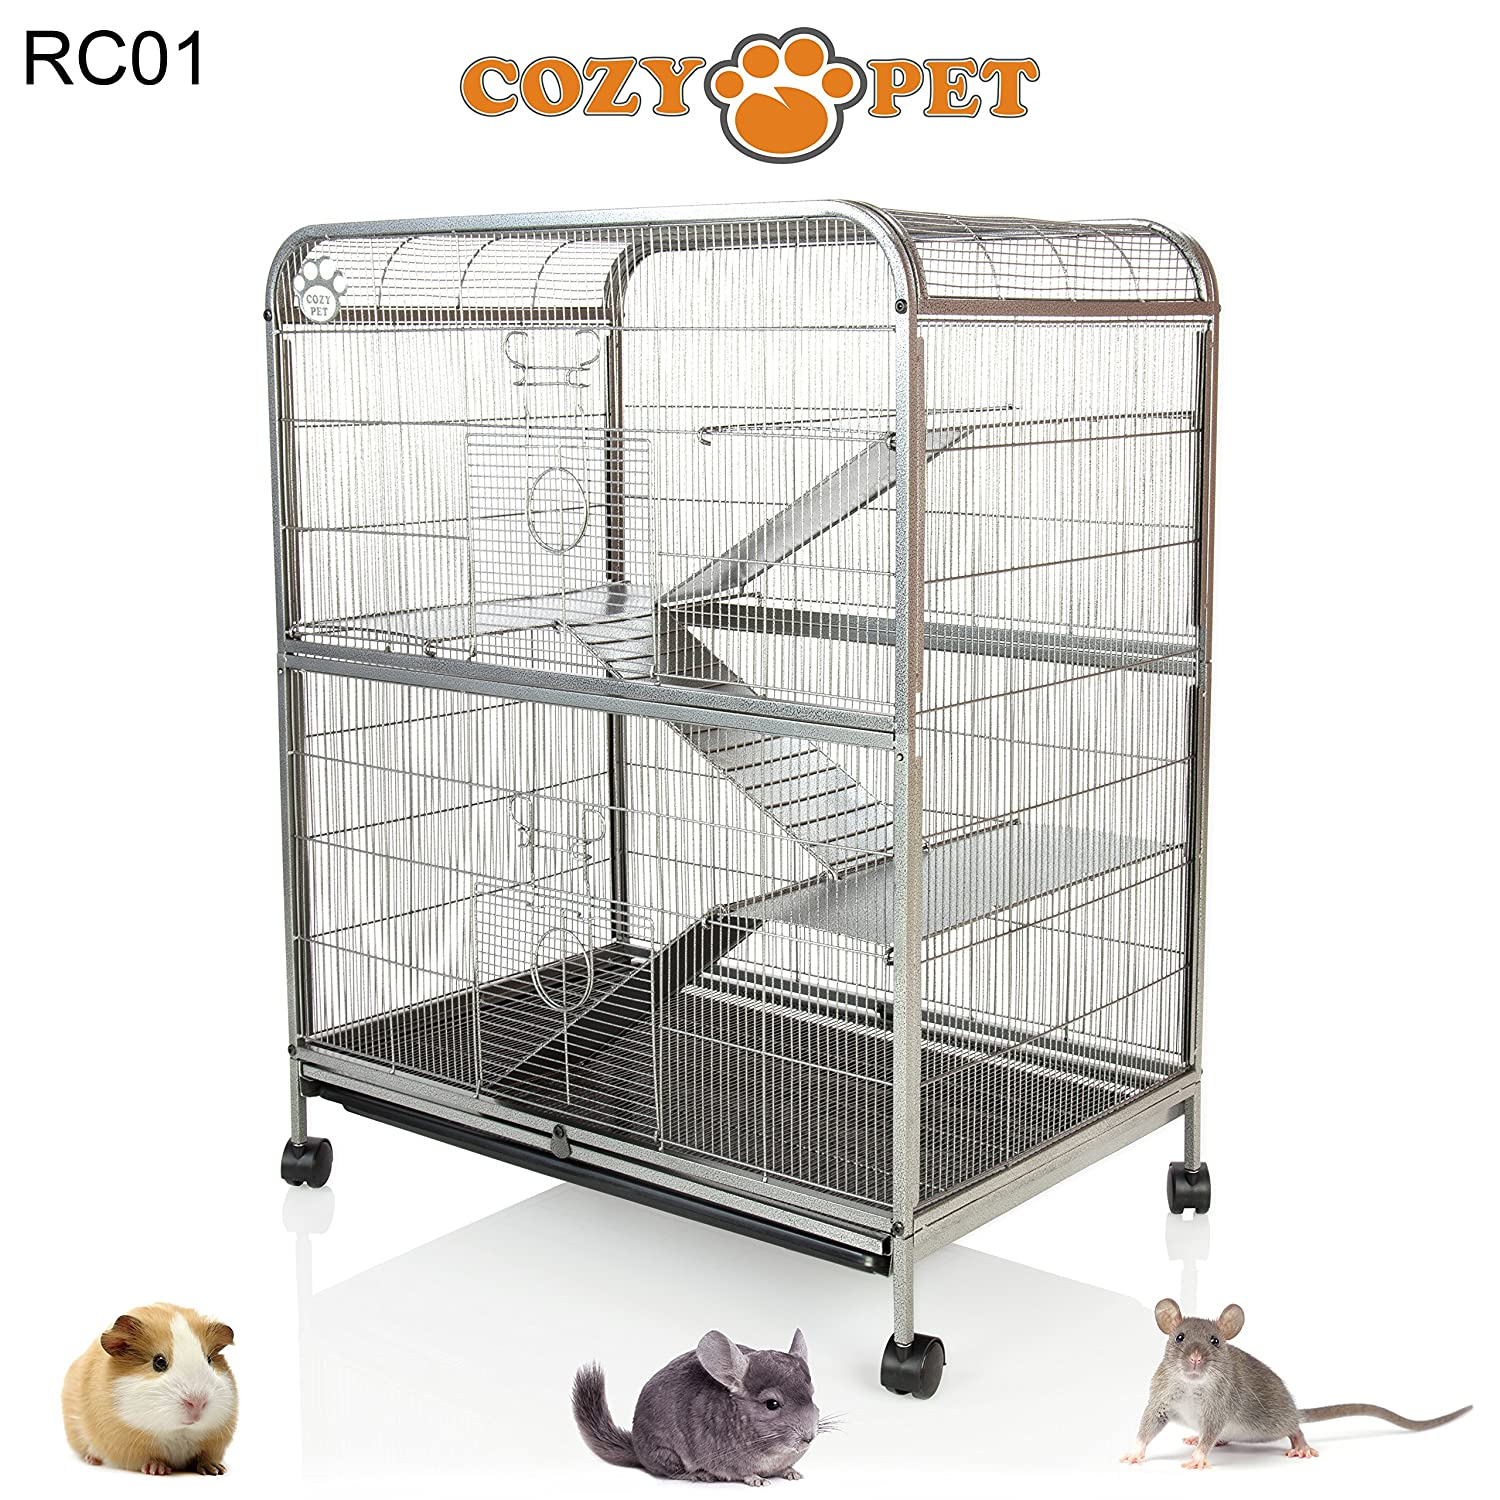 Degu cage do-it-yourself: description, device, features and reviews 77